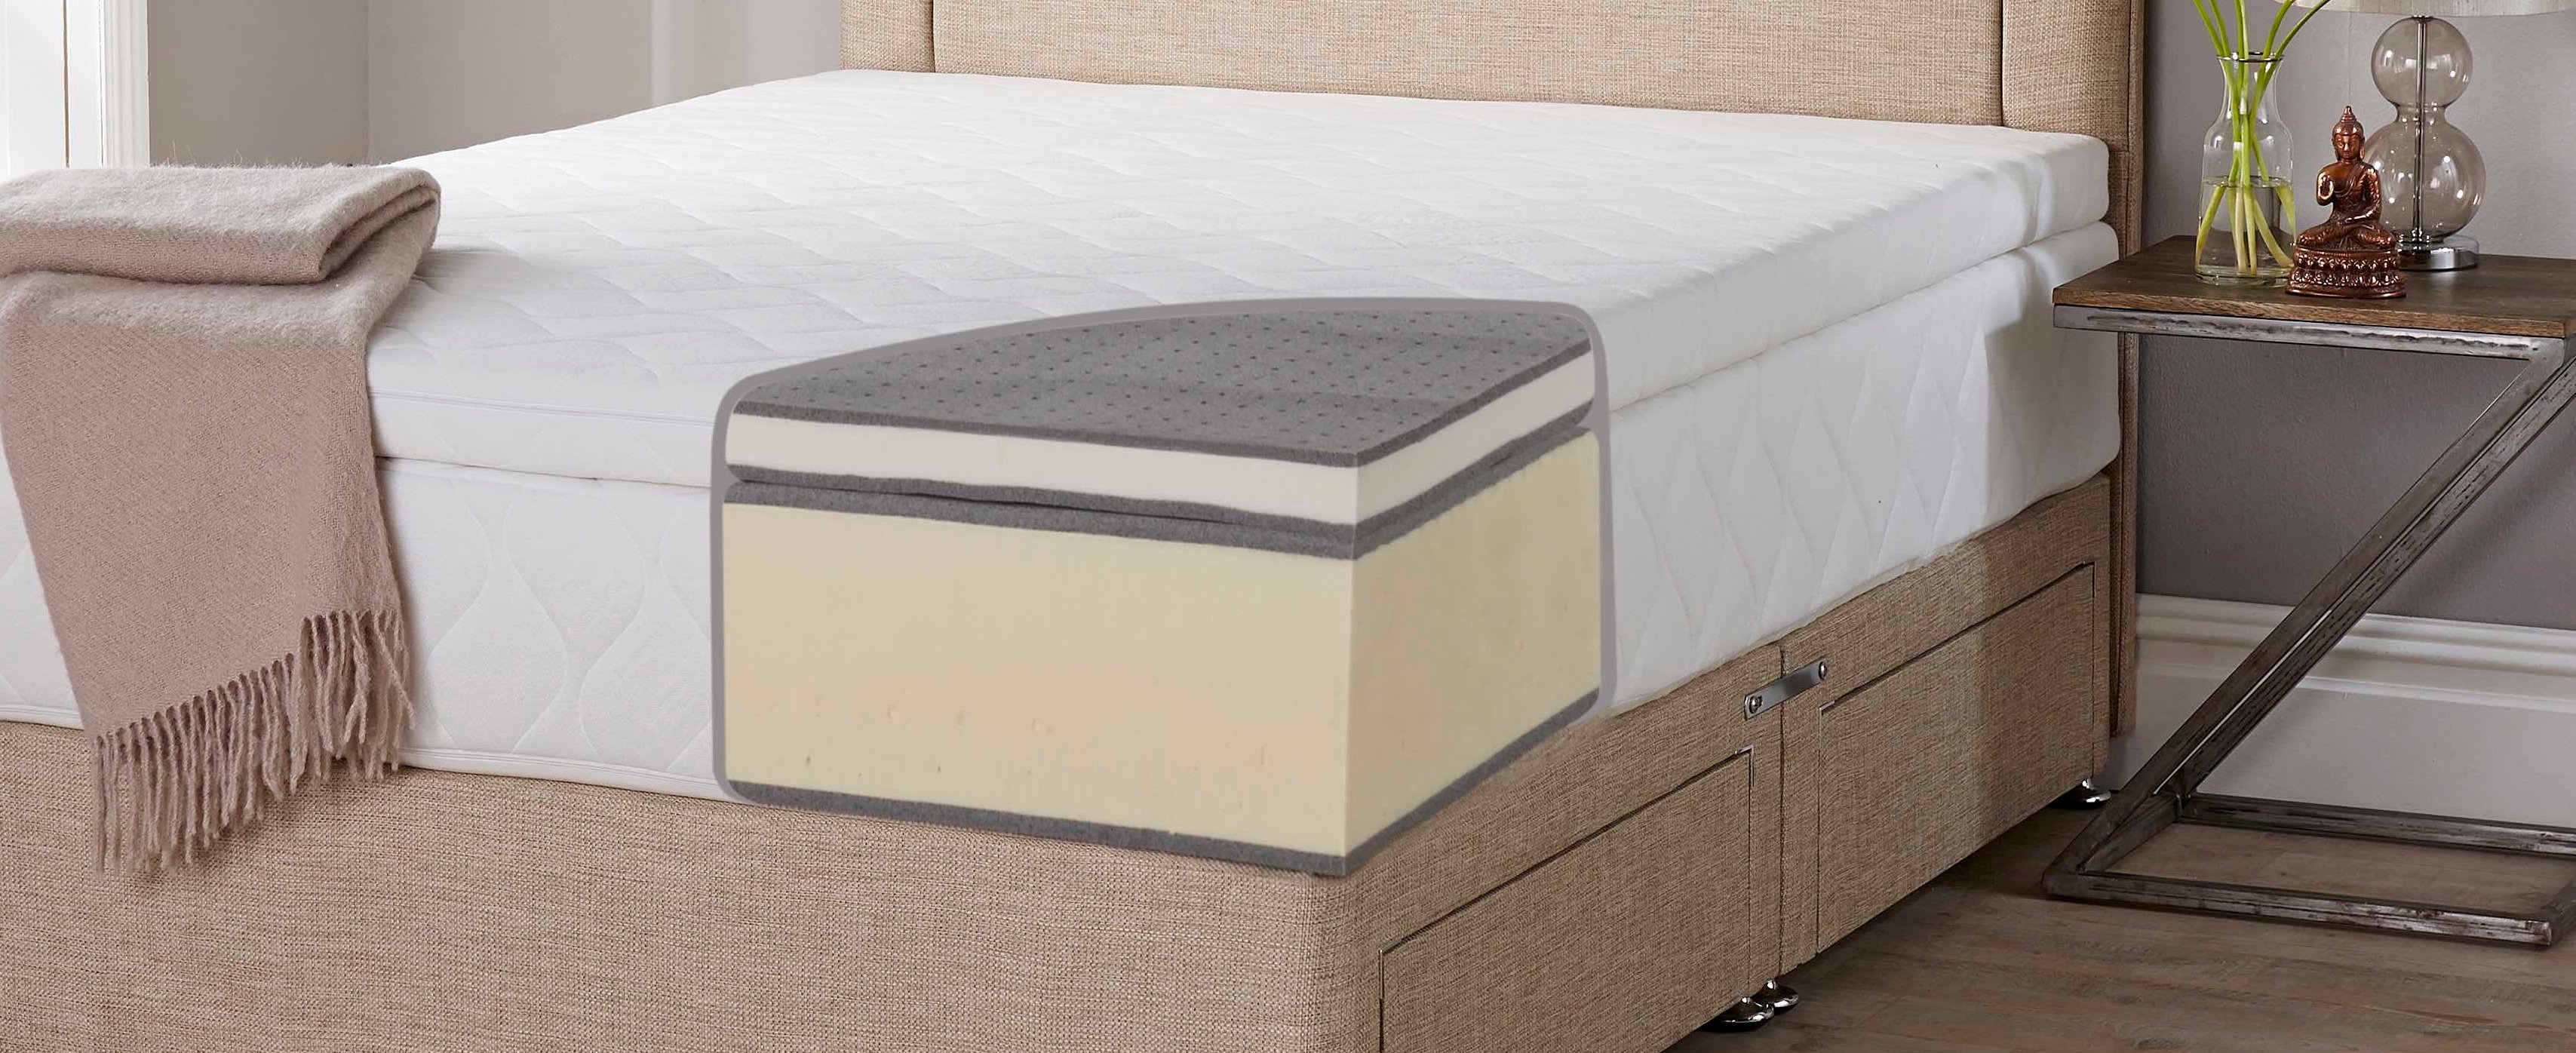 What Is In A Latex Mattress? | John Ryan By Design